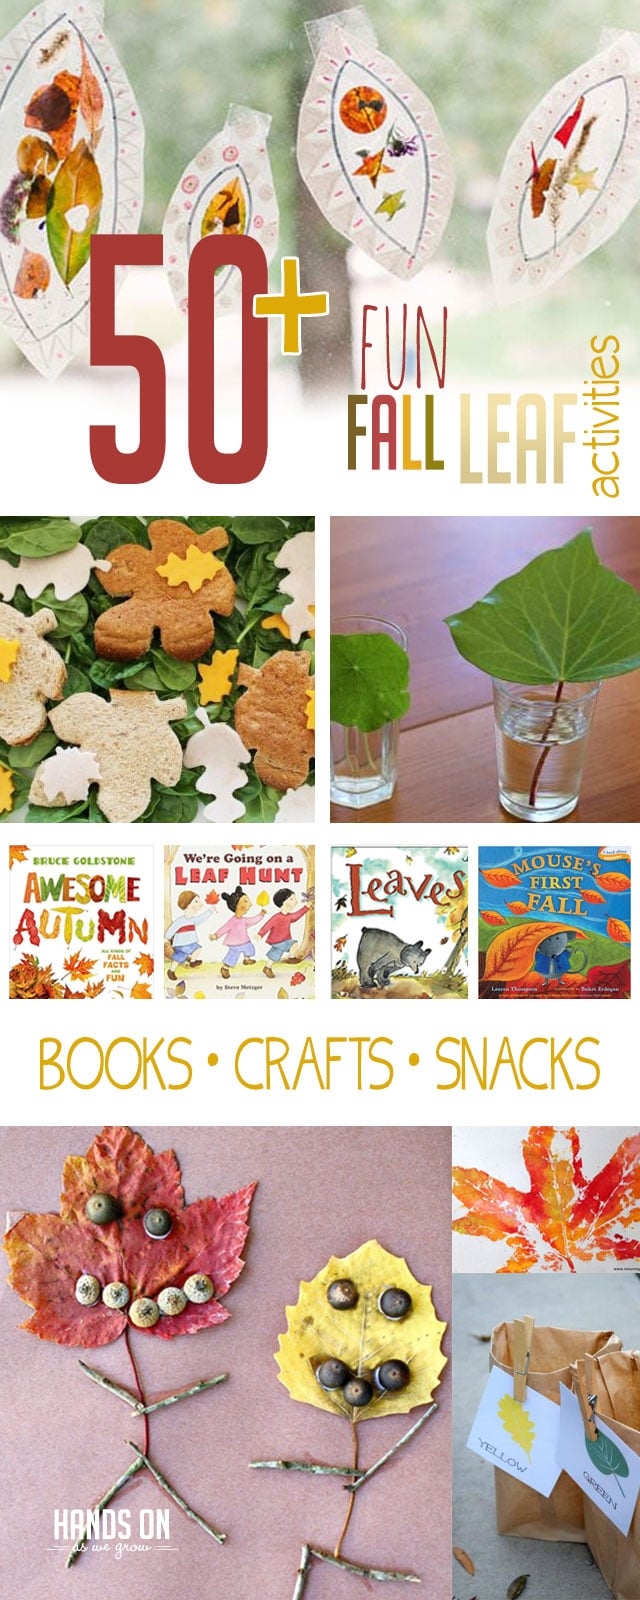 Discover more than 50 fall leaf activities to do, make, read, and eat that are perfect for kids!